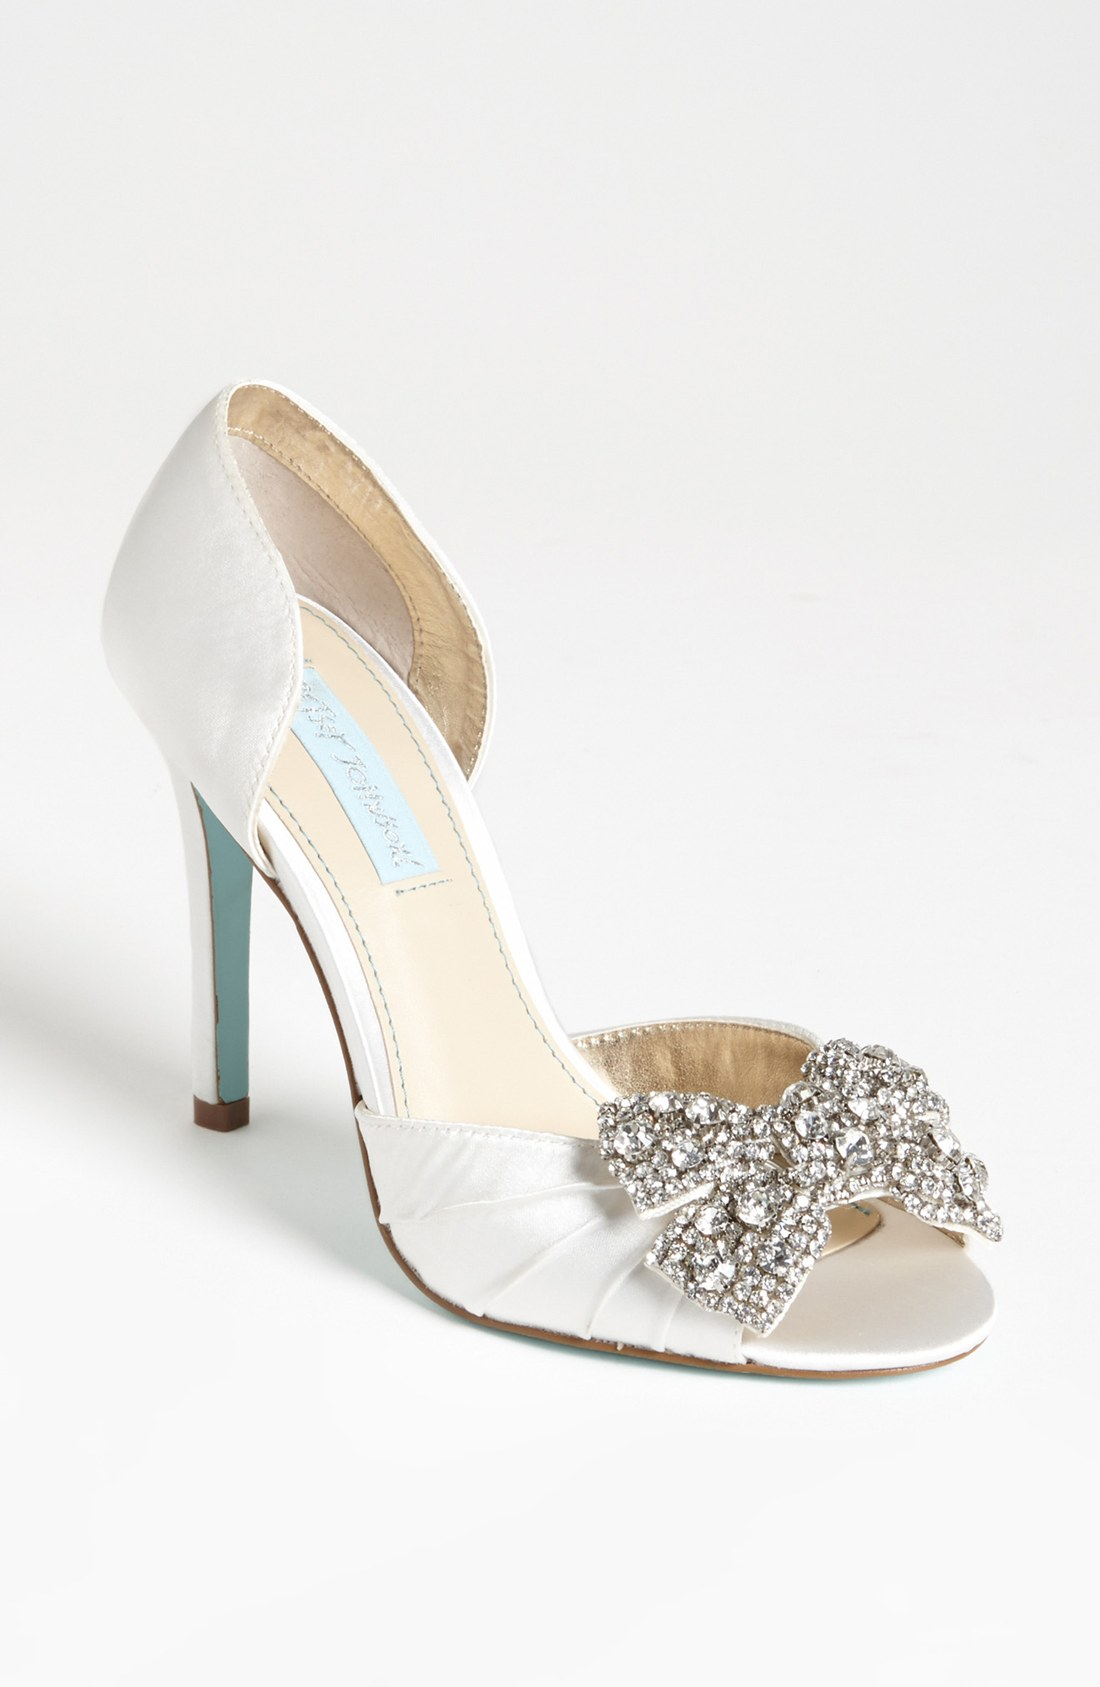 Get the best deals on betsey johnson bridal shoes and save up to 70% off at Poshmark now! Whatever you're shopping for, we've got it.